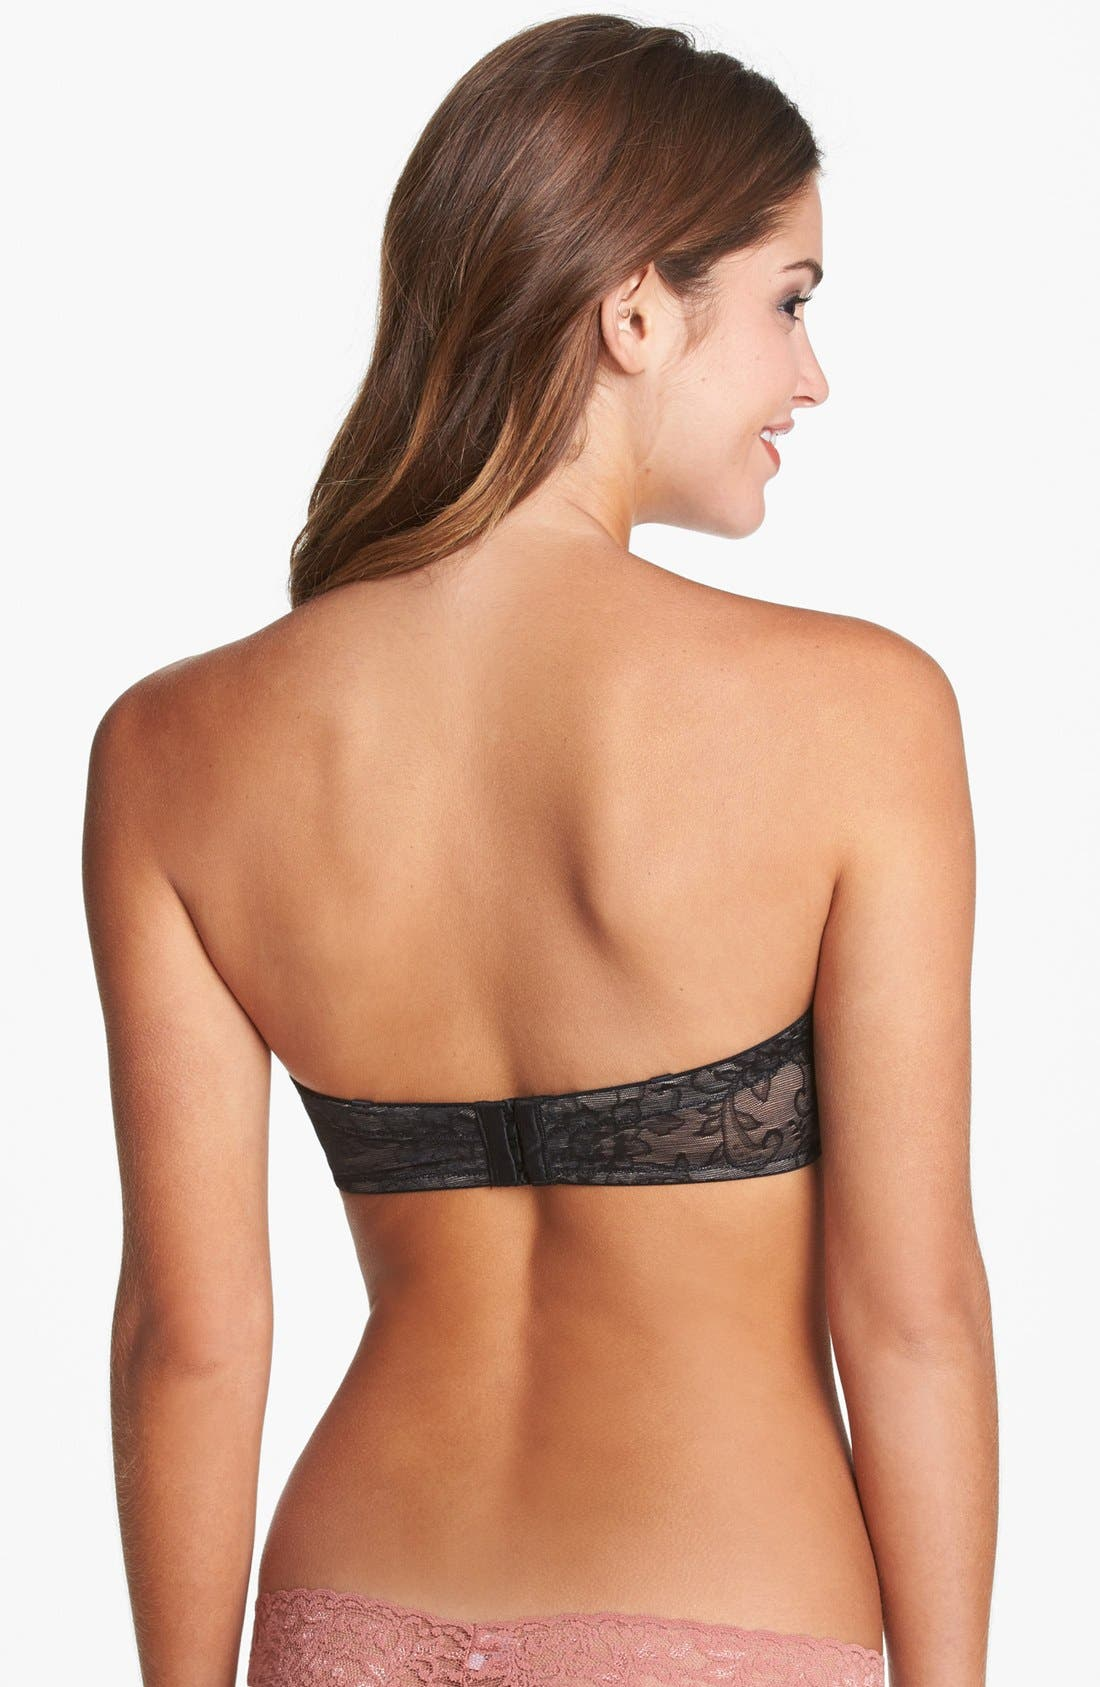 'Calais' Strapless Bra,                             Alternate thumbnail 2, color,                             005